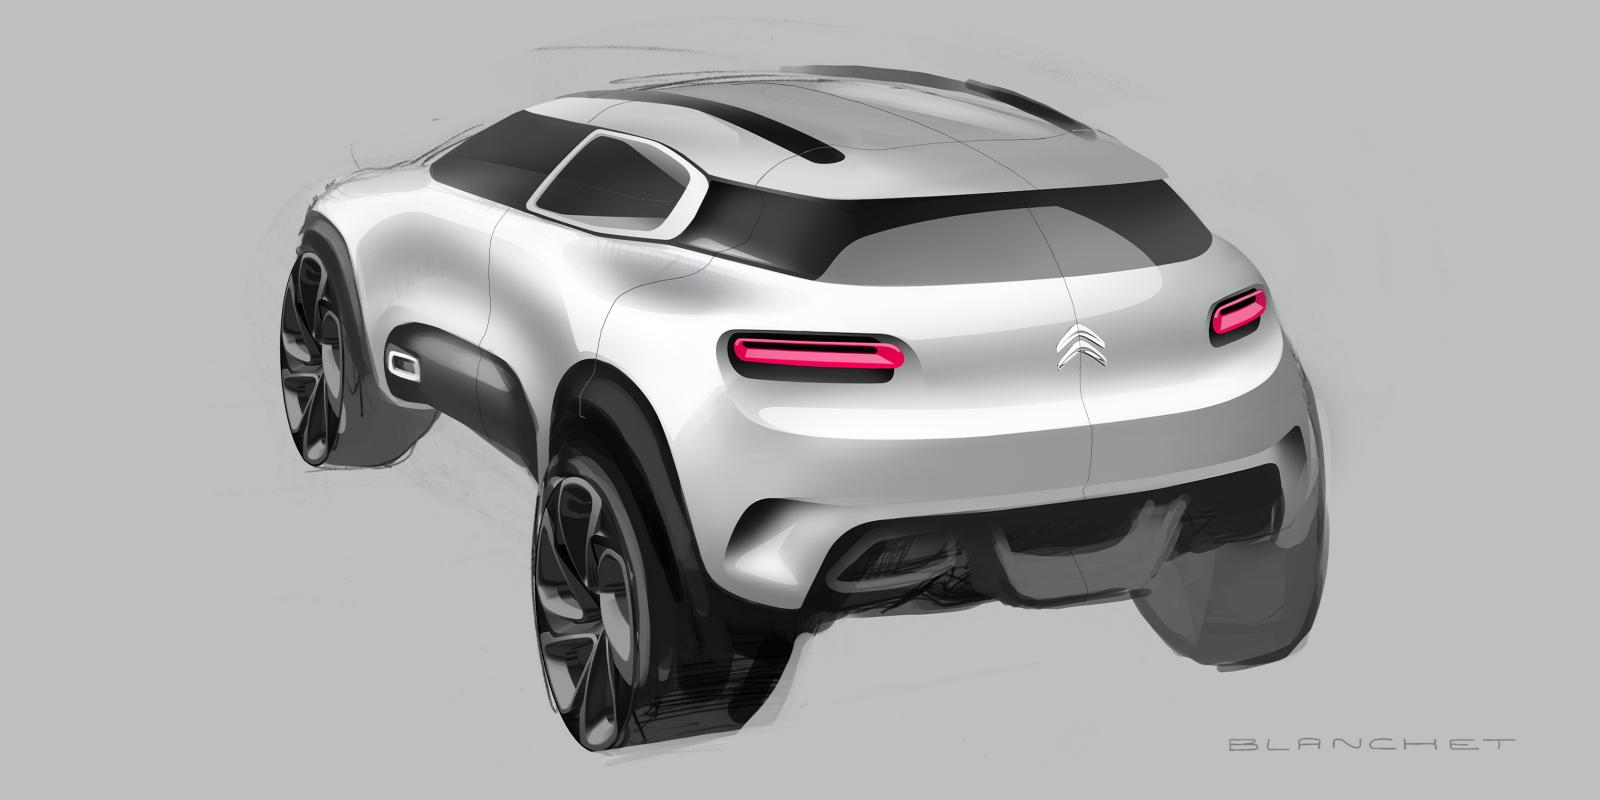 Maquette Concept Aircross